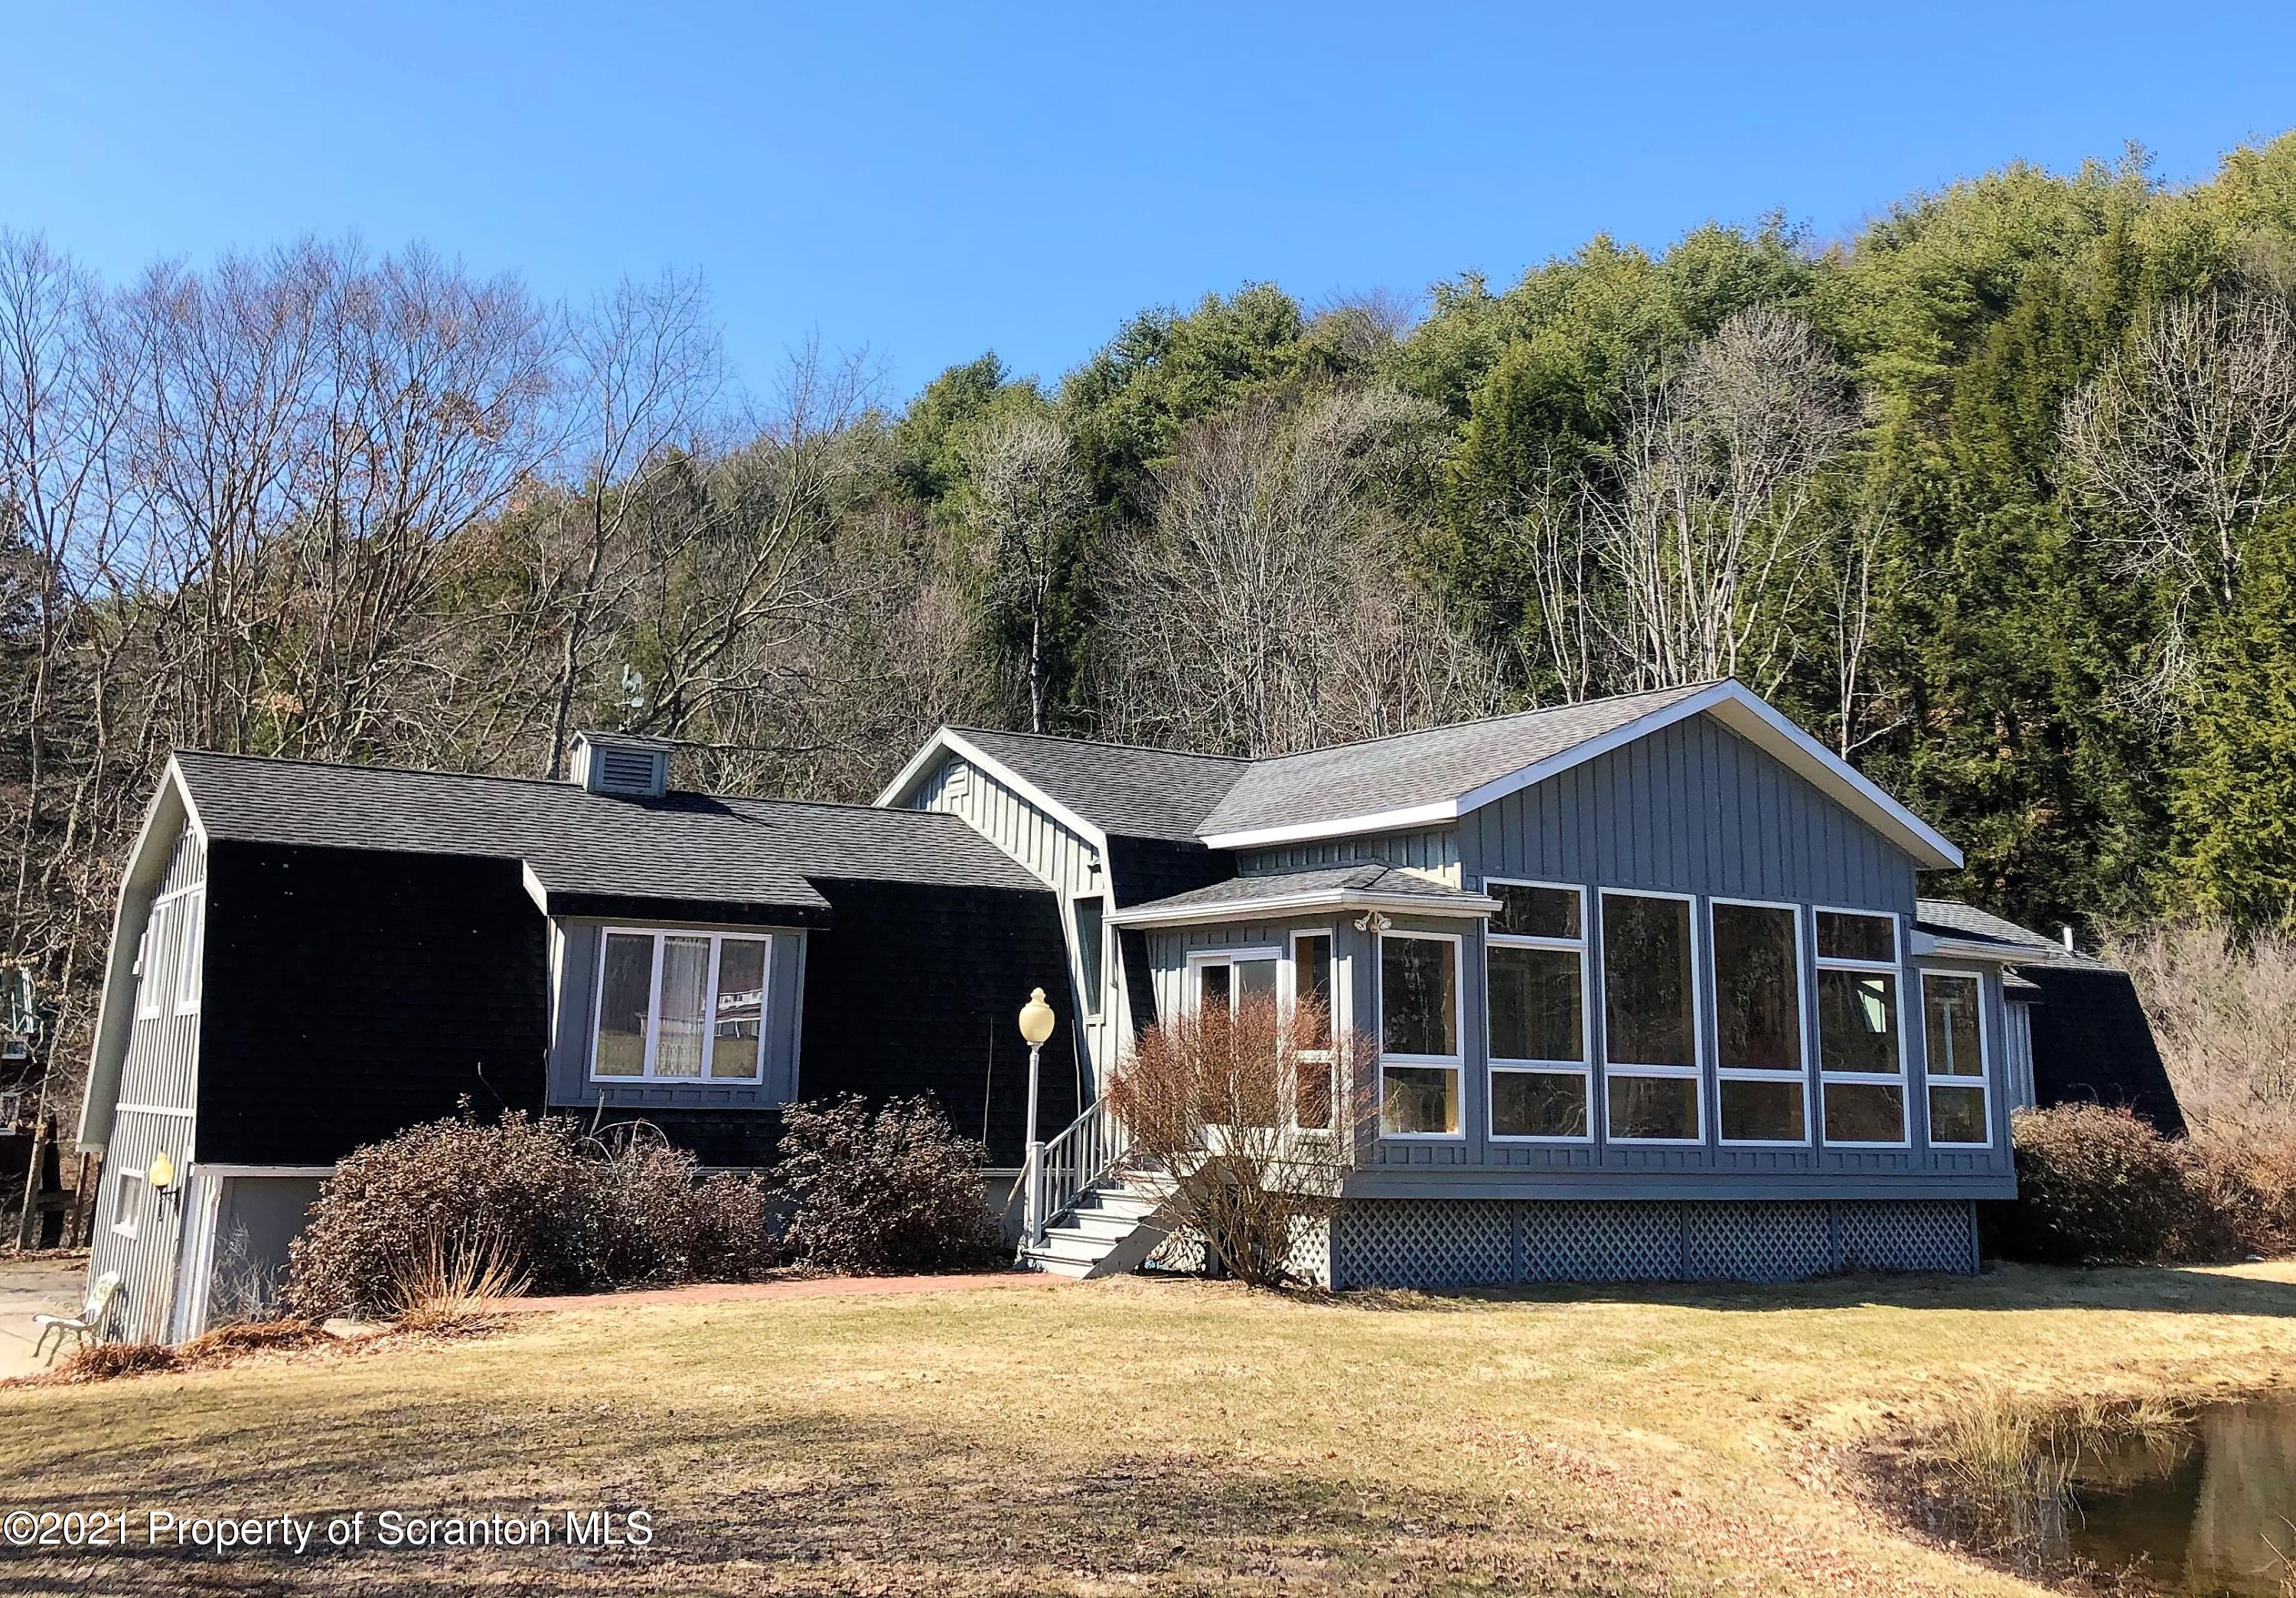 13559 State Route 267, Lawton, Pennsylvania 18828, 5 Bedrooms Bedrooms, 12 Rooms Rooms,4 BathroomsBathrooms,Single Family,For Sale,State Route 267,21-1355